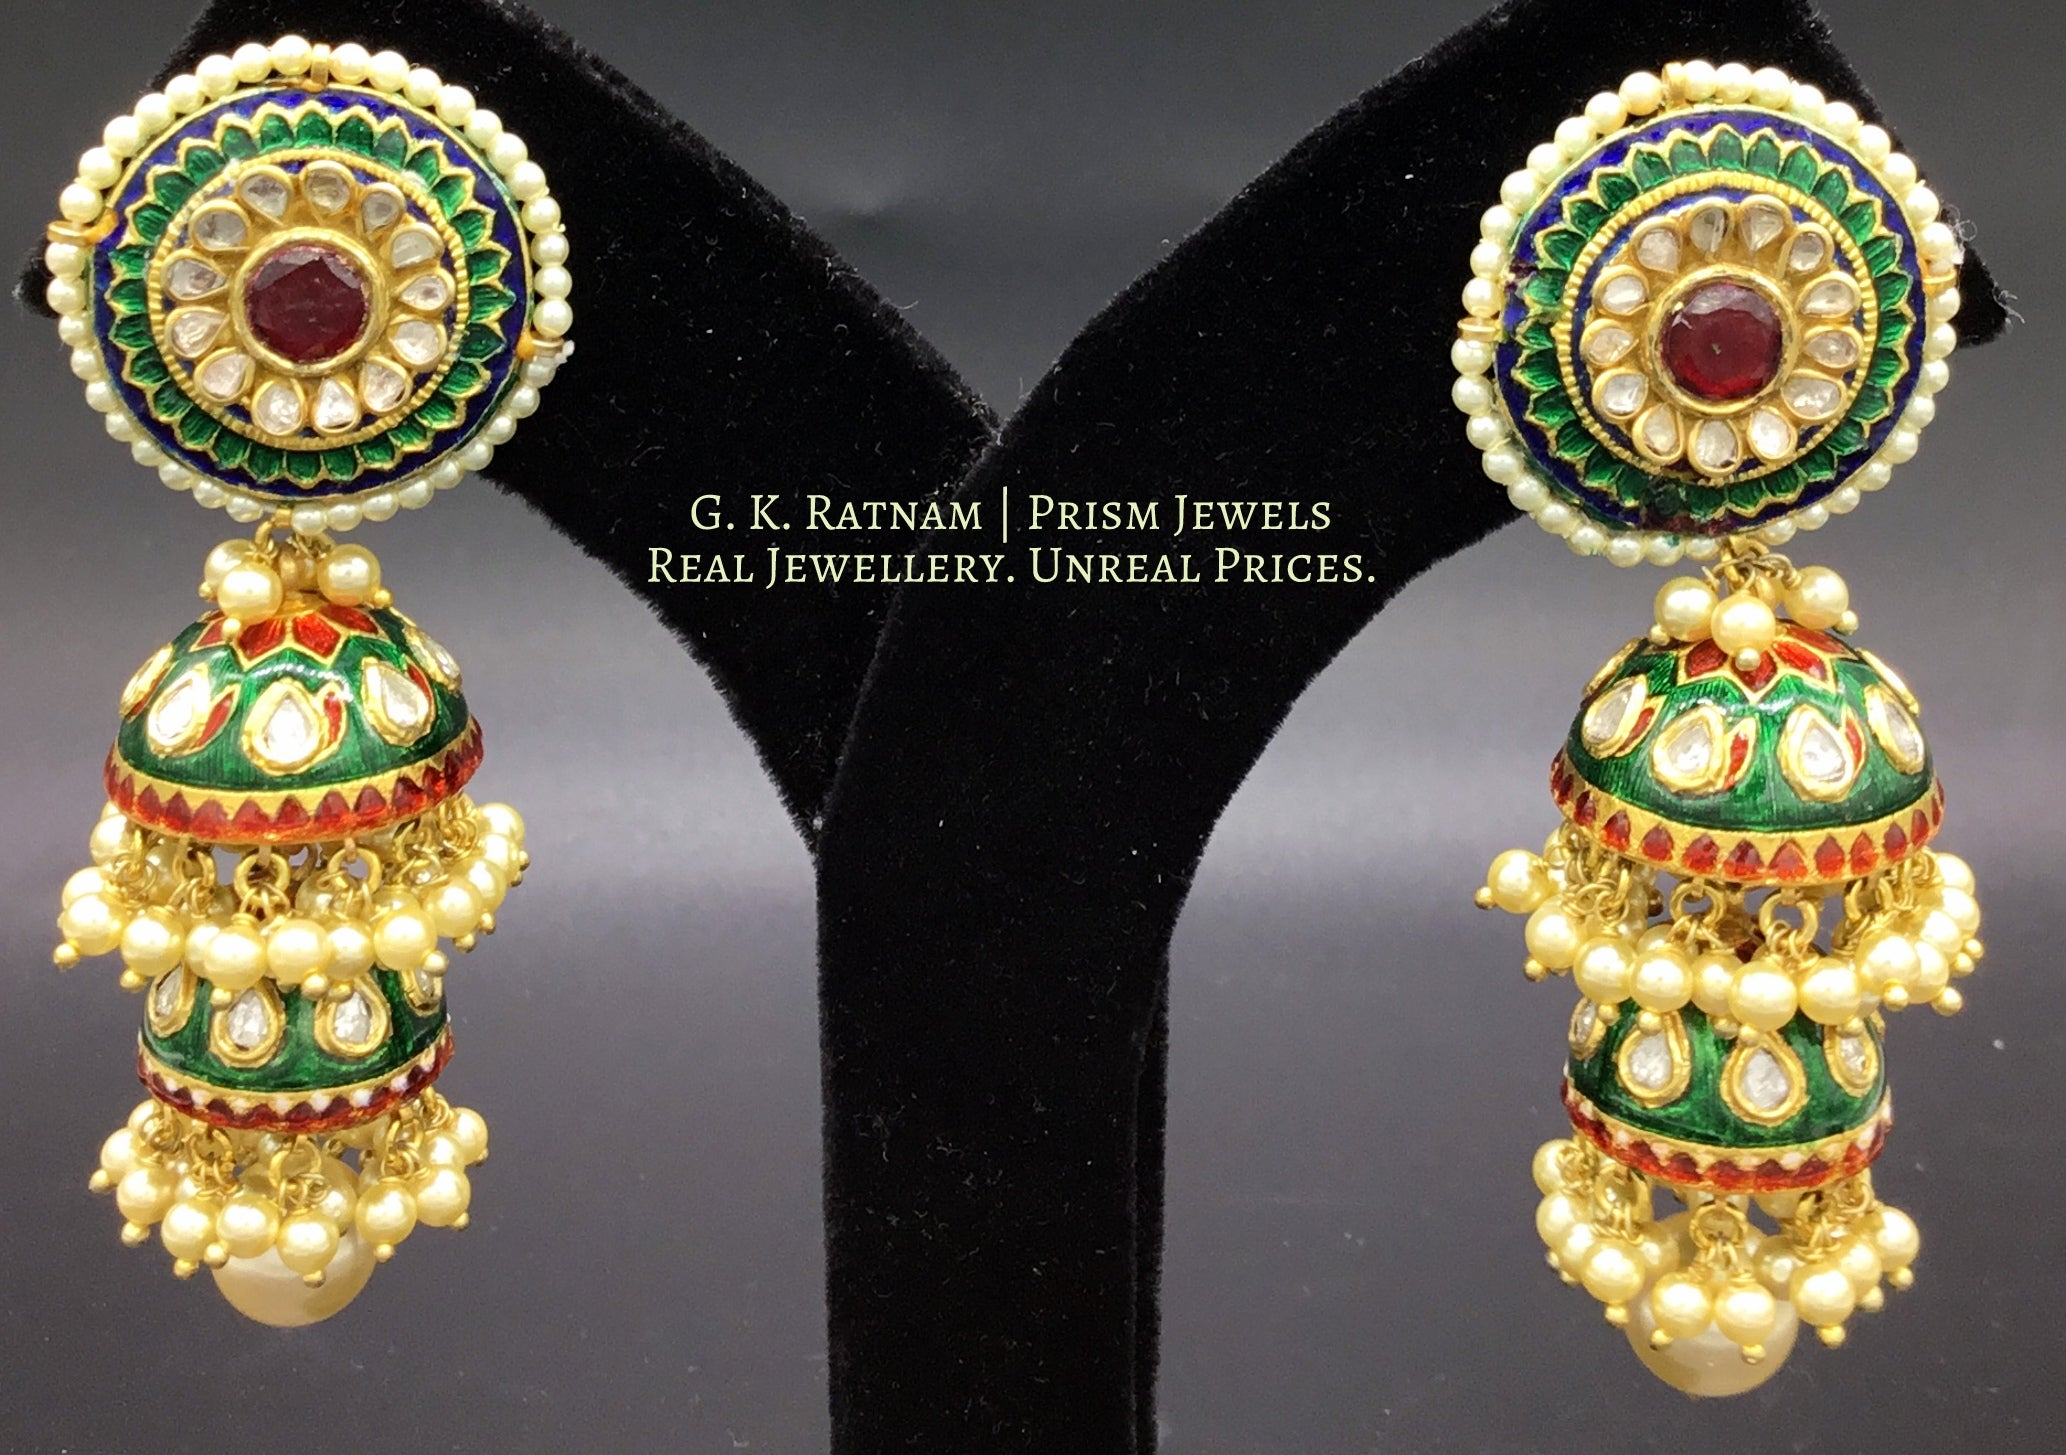 23k Gold and Diamond Polki Pacchi Tops and two-layered Jhumki Earring Pair with intricate green and red enamelling - gold diamond polki kundan meena jadau jewellery